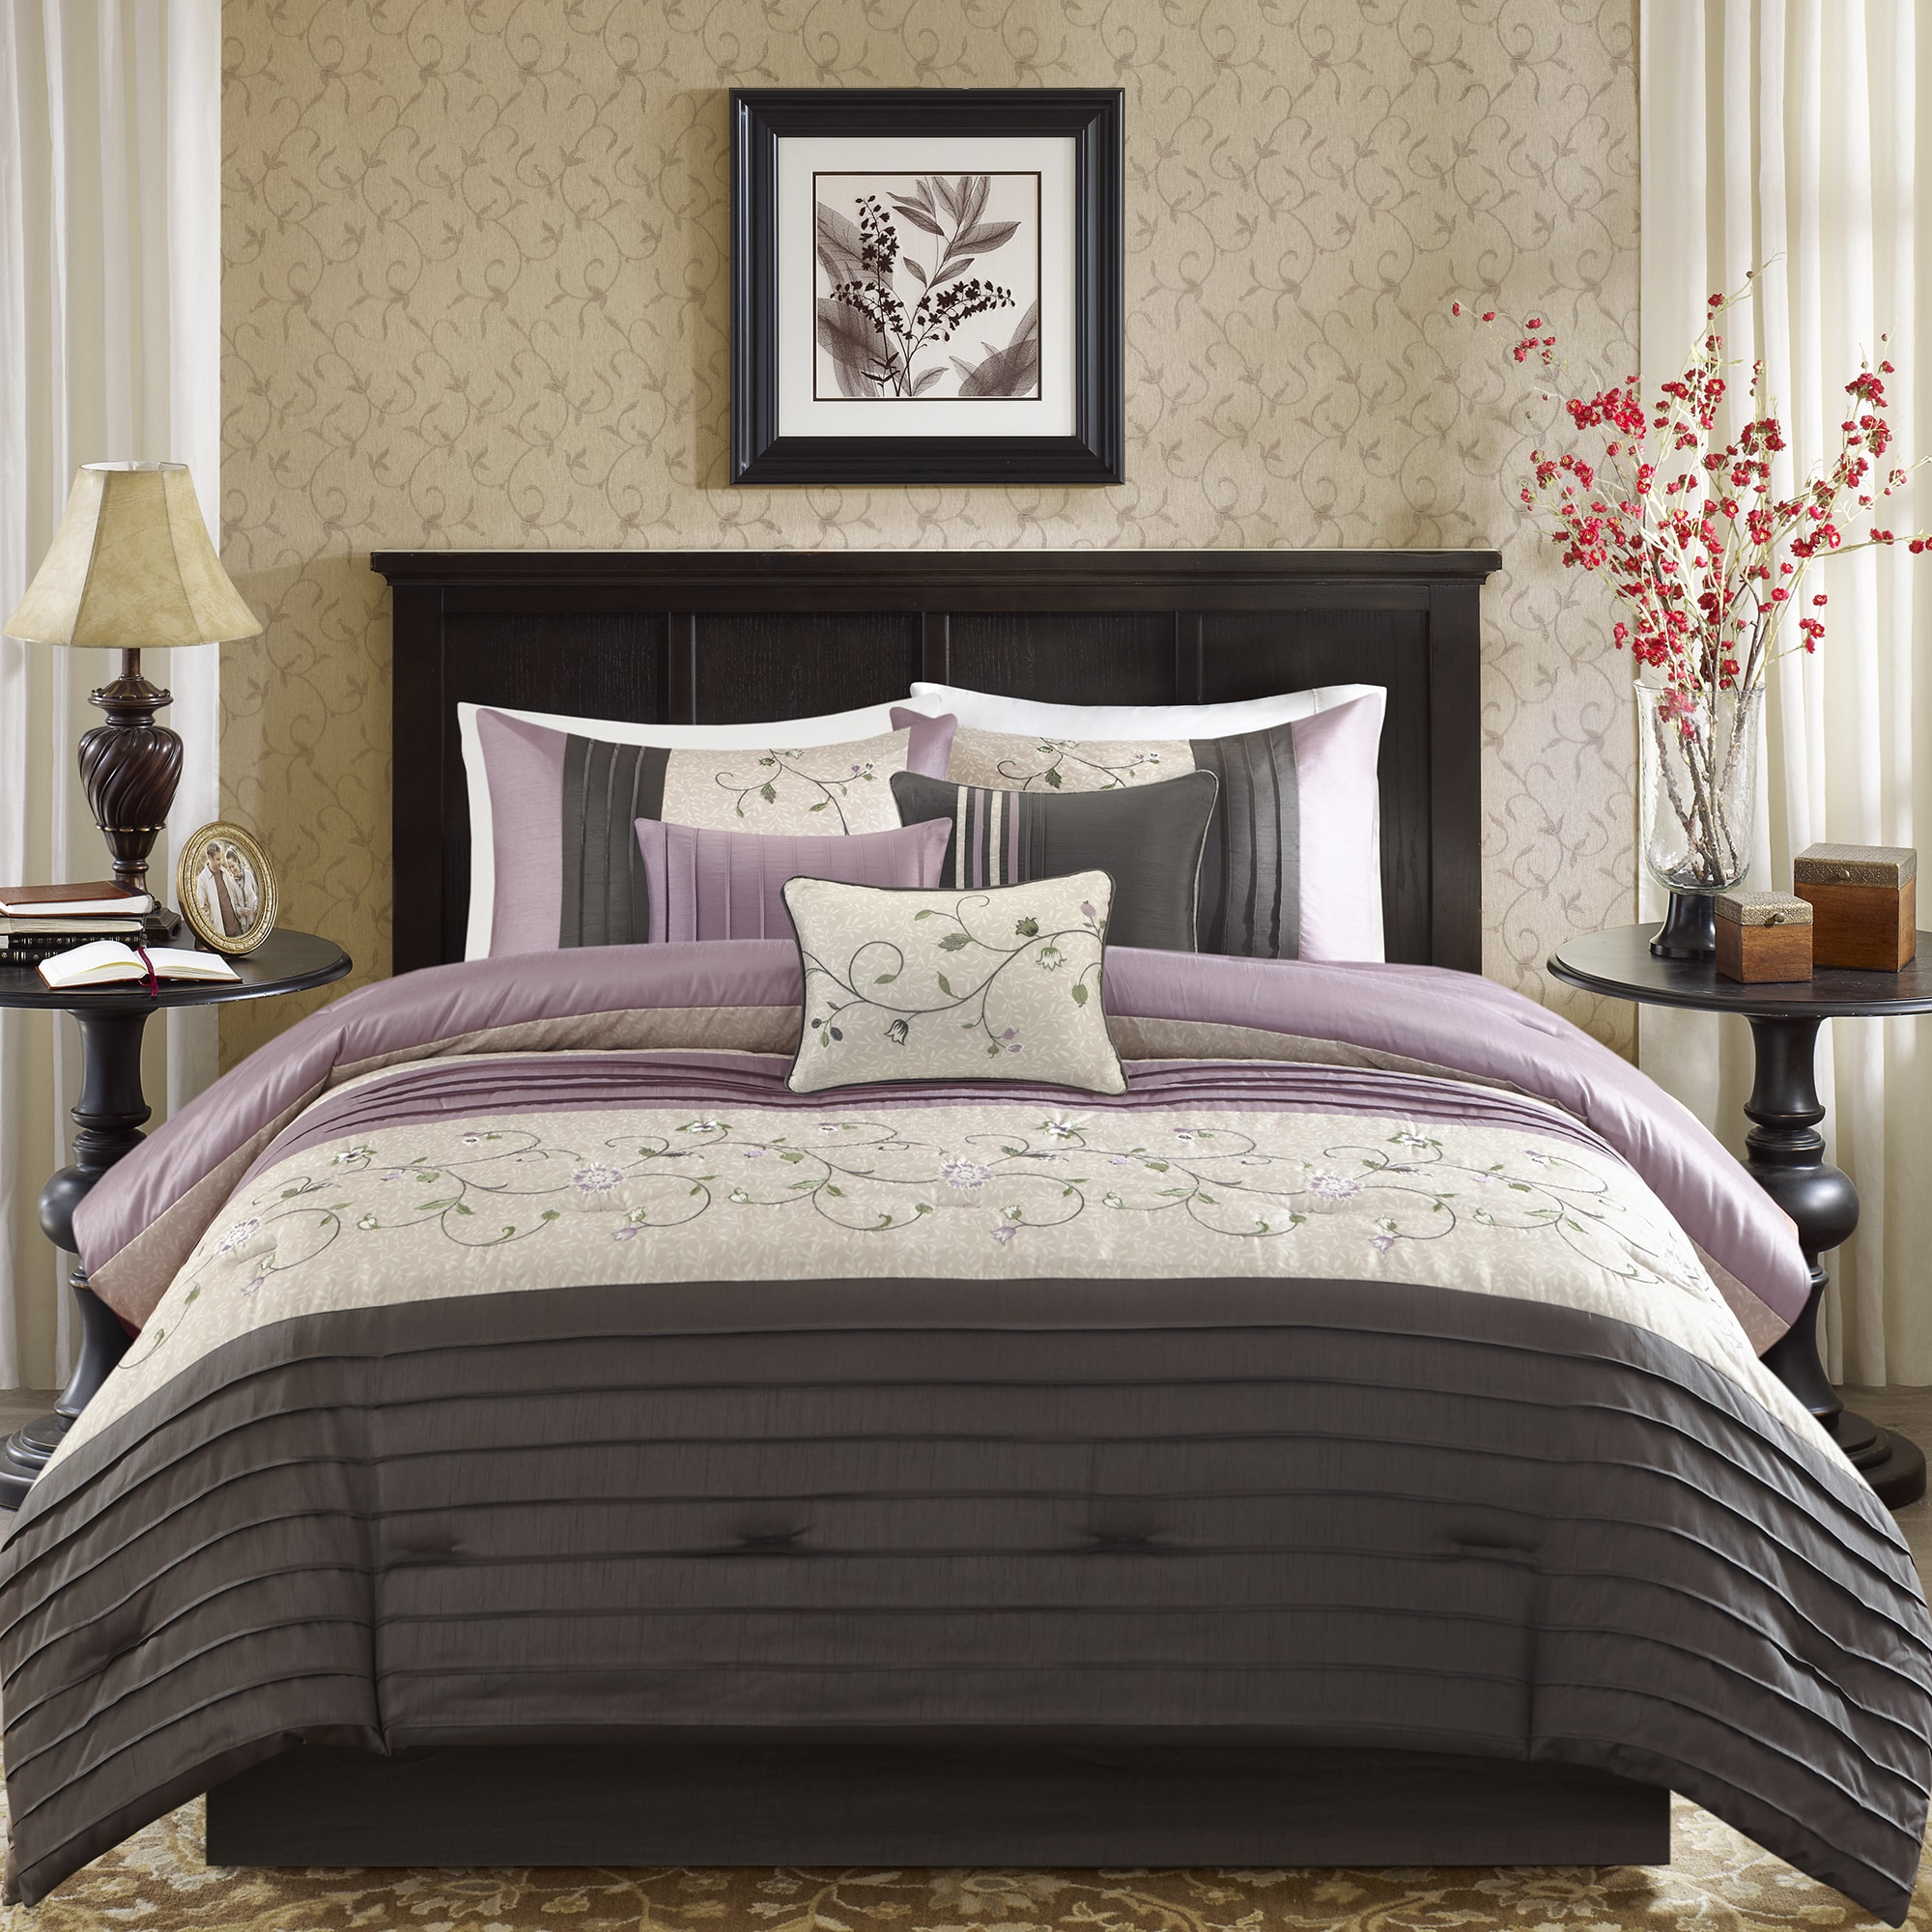 chic bed ease with purple dye style x hand black home printed and shibori striped benjamin comforter twin piece bedding dipped tie